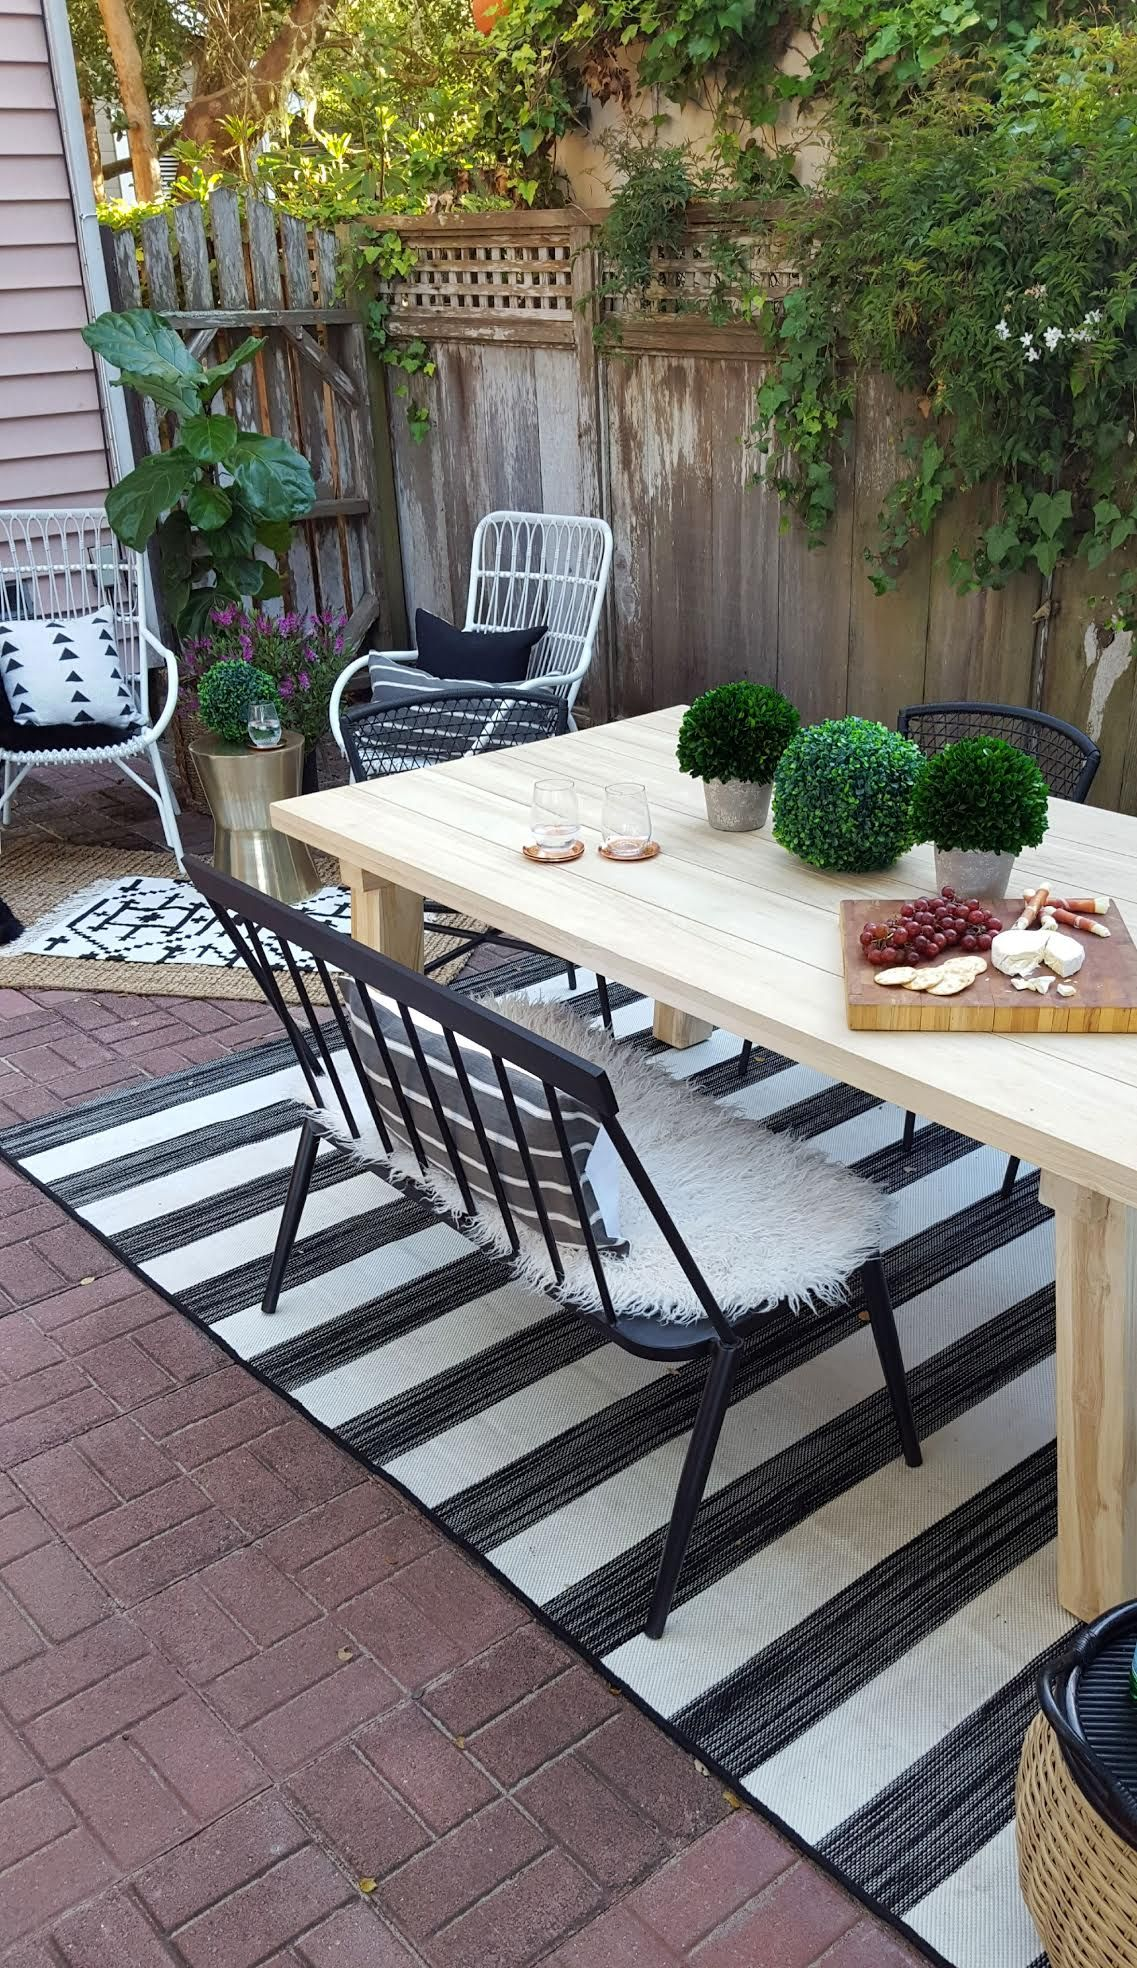 Patio Makeover With Article (With images)   Patio, Patio ... on Living Spaces Outdoor Dining id=86098